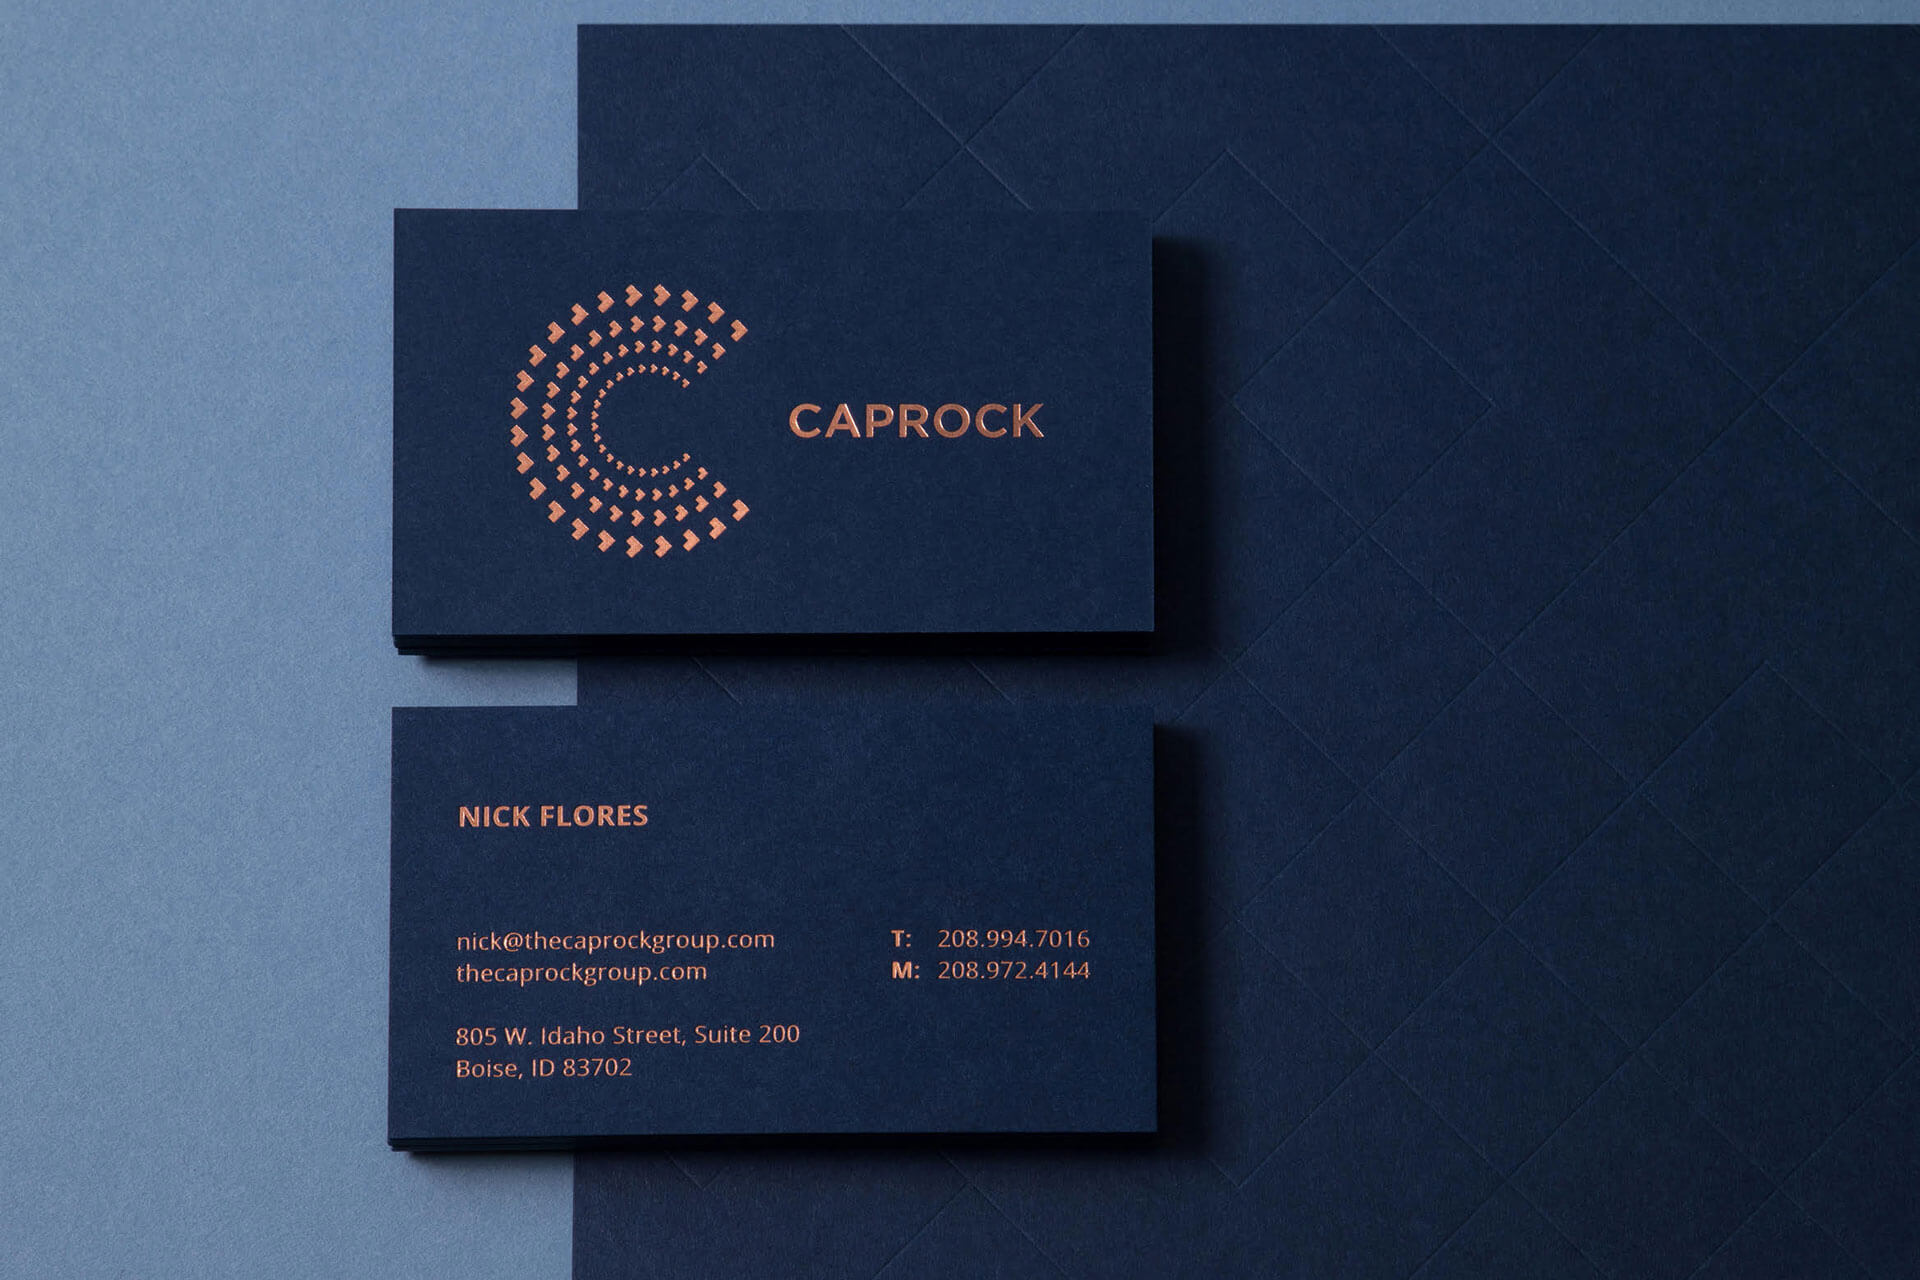 caprock_card_and_cover